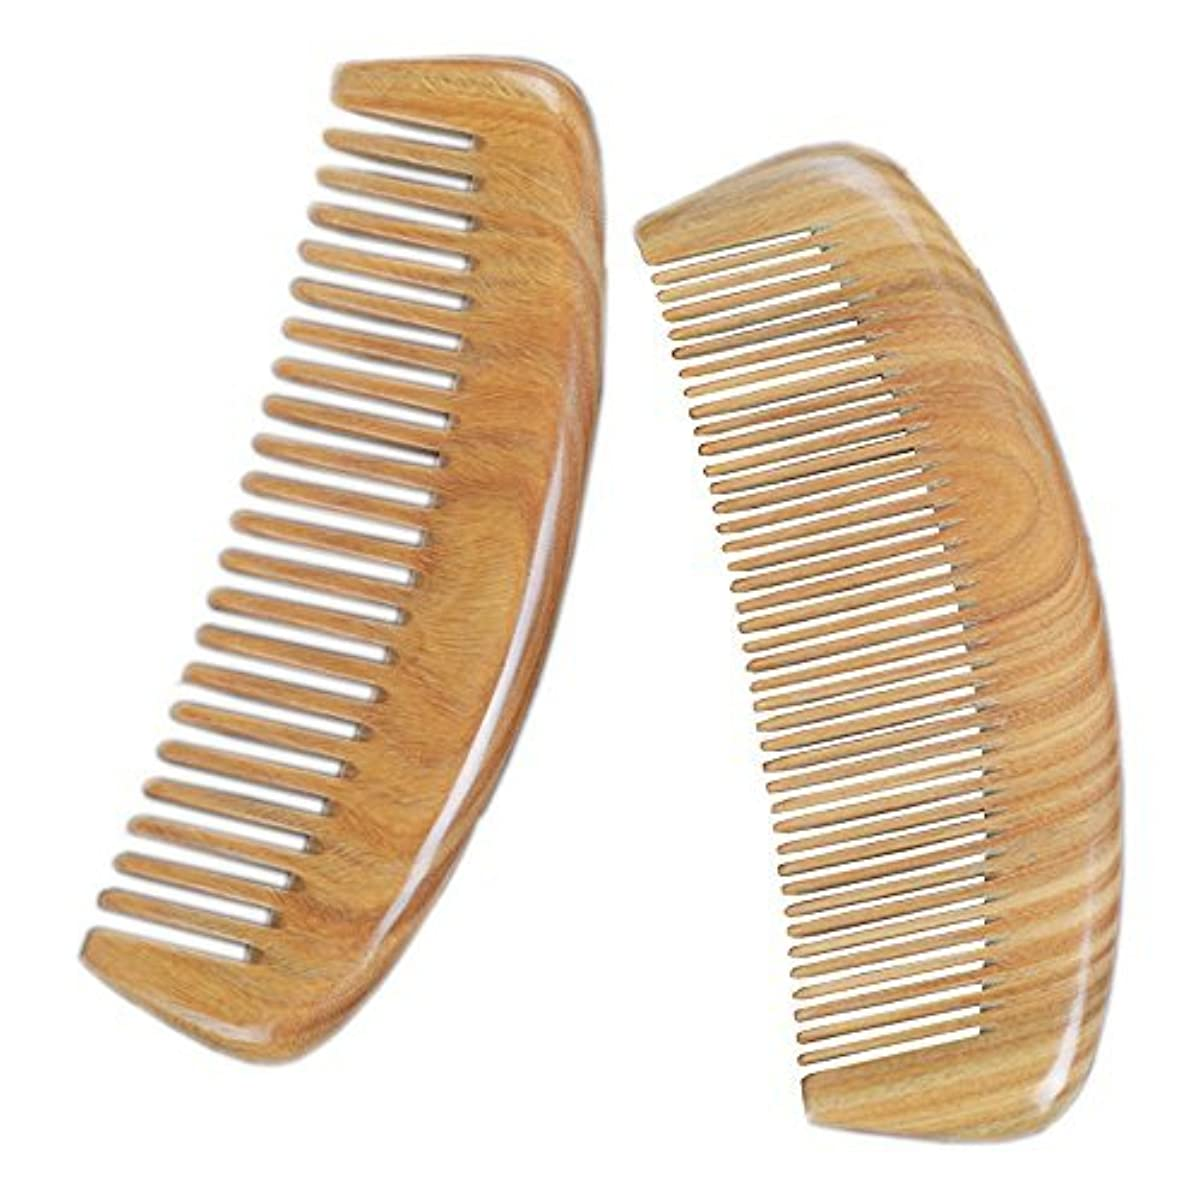 文言滑る彫刻家LiveZone Handmade Natural Green Sandalwood 2-Count(Minute Tooth and Wide Tooth Wood Comb) Hair Comb with Natural...